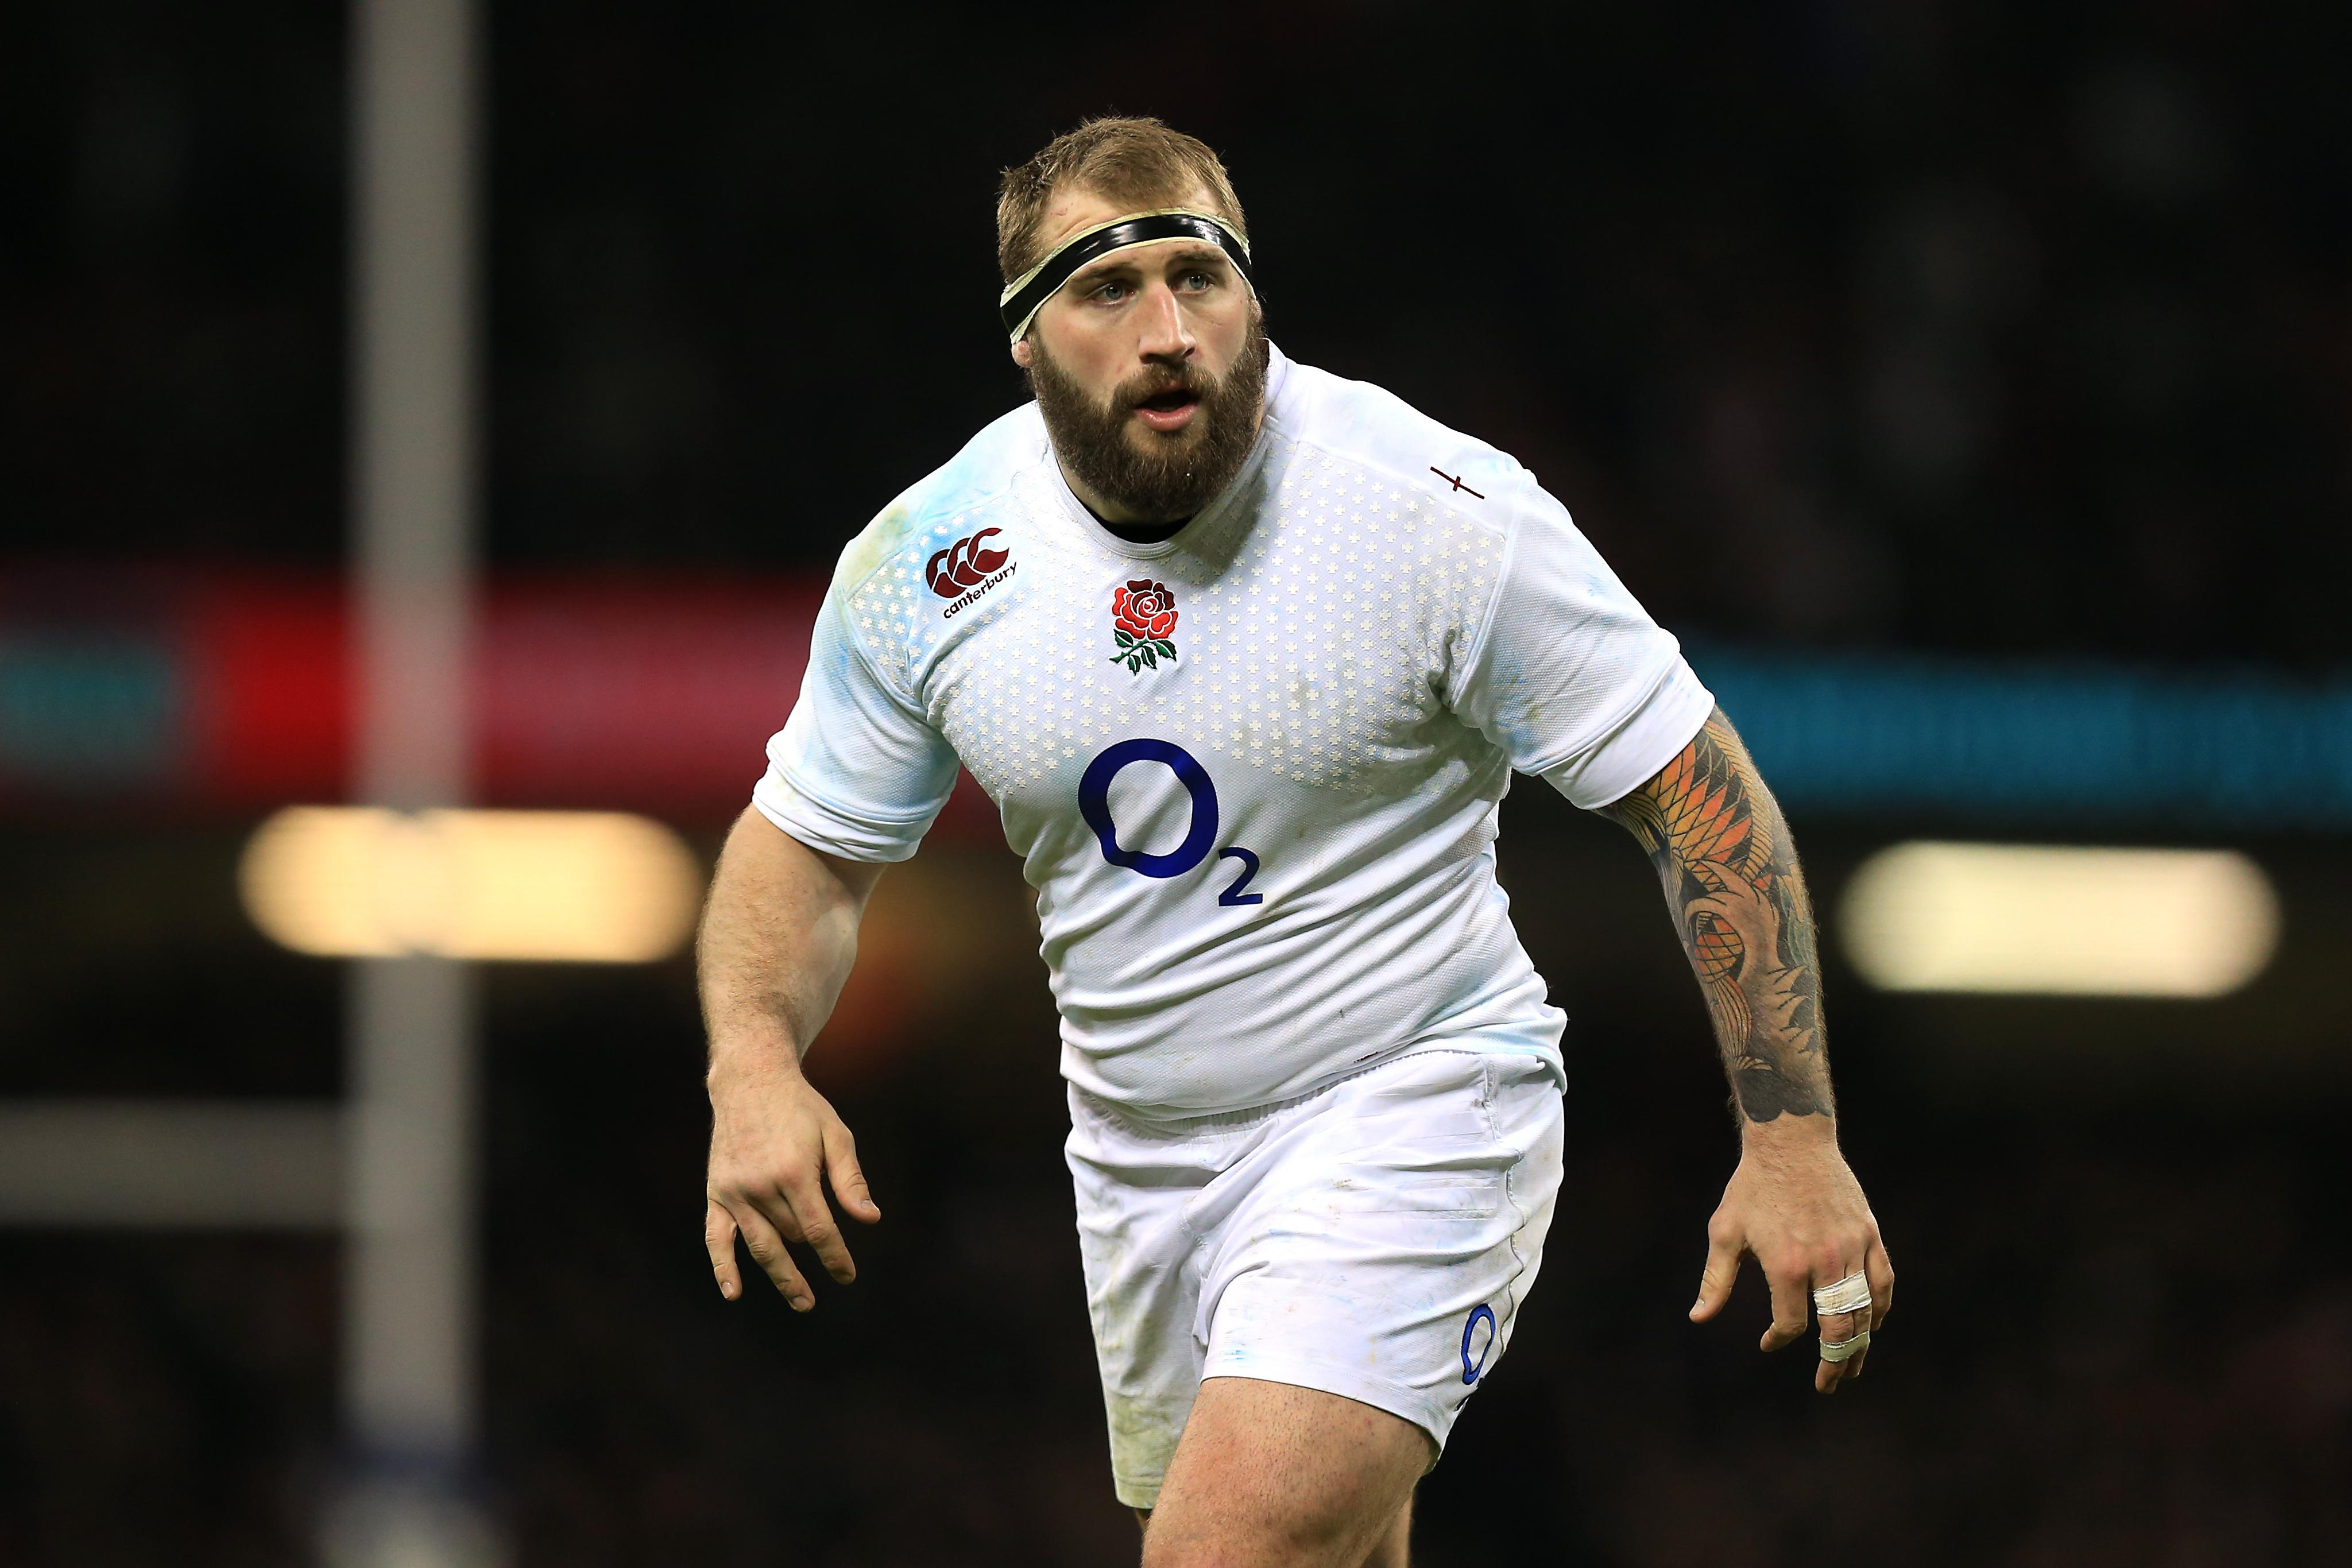 Joe Marler is a regular room-mate for England Harlequins colleague Care